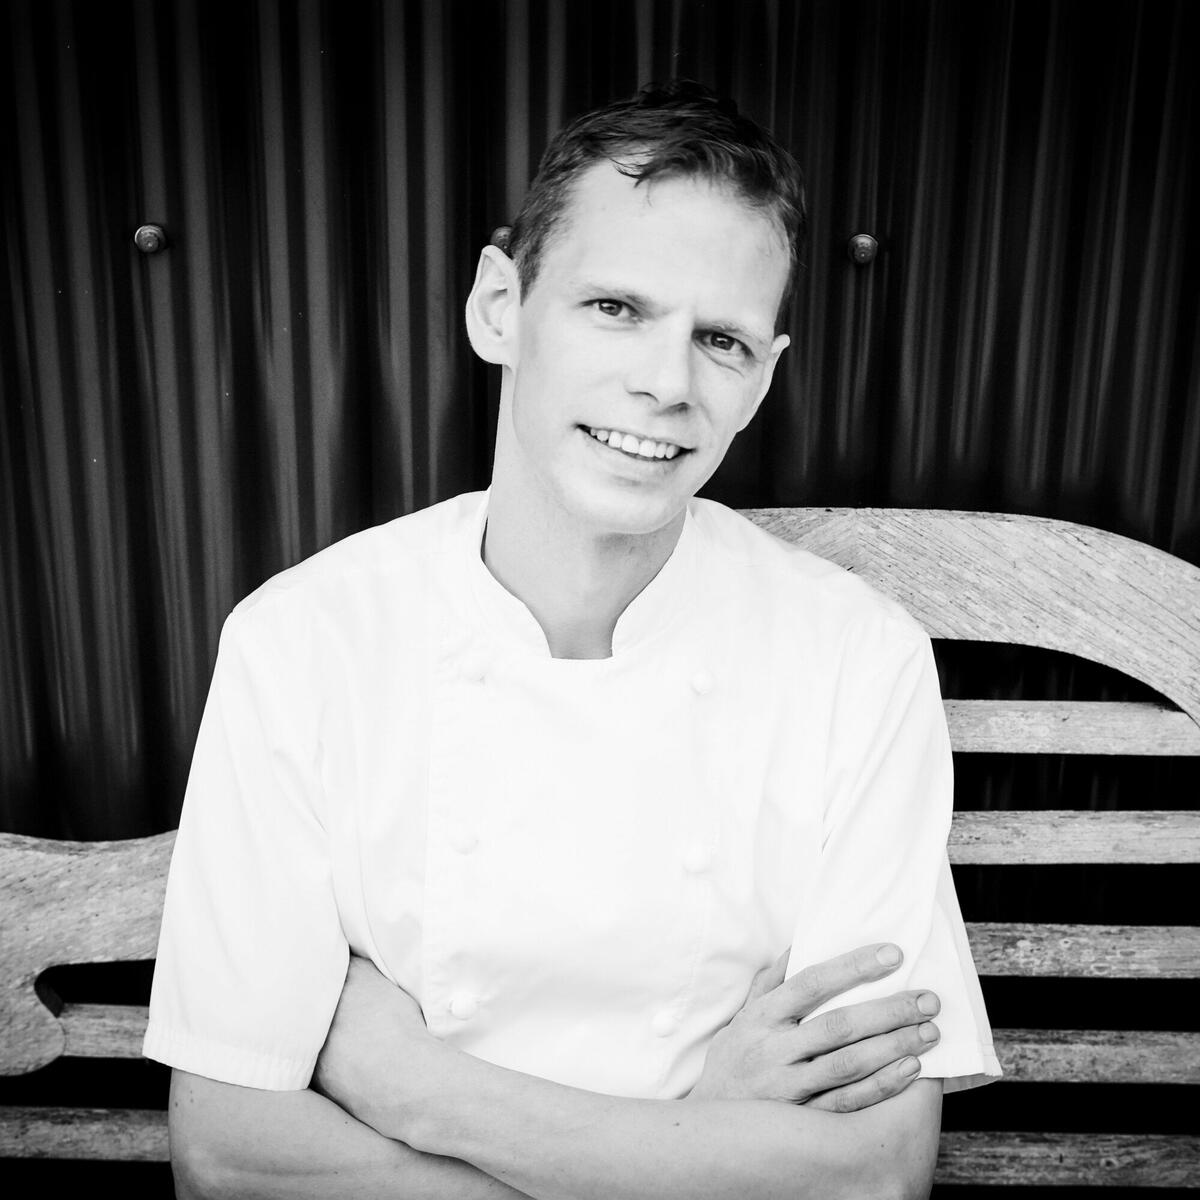 Head Chef, Chris Simpson by Jodi Hinds